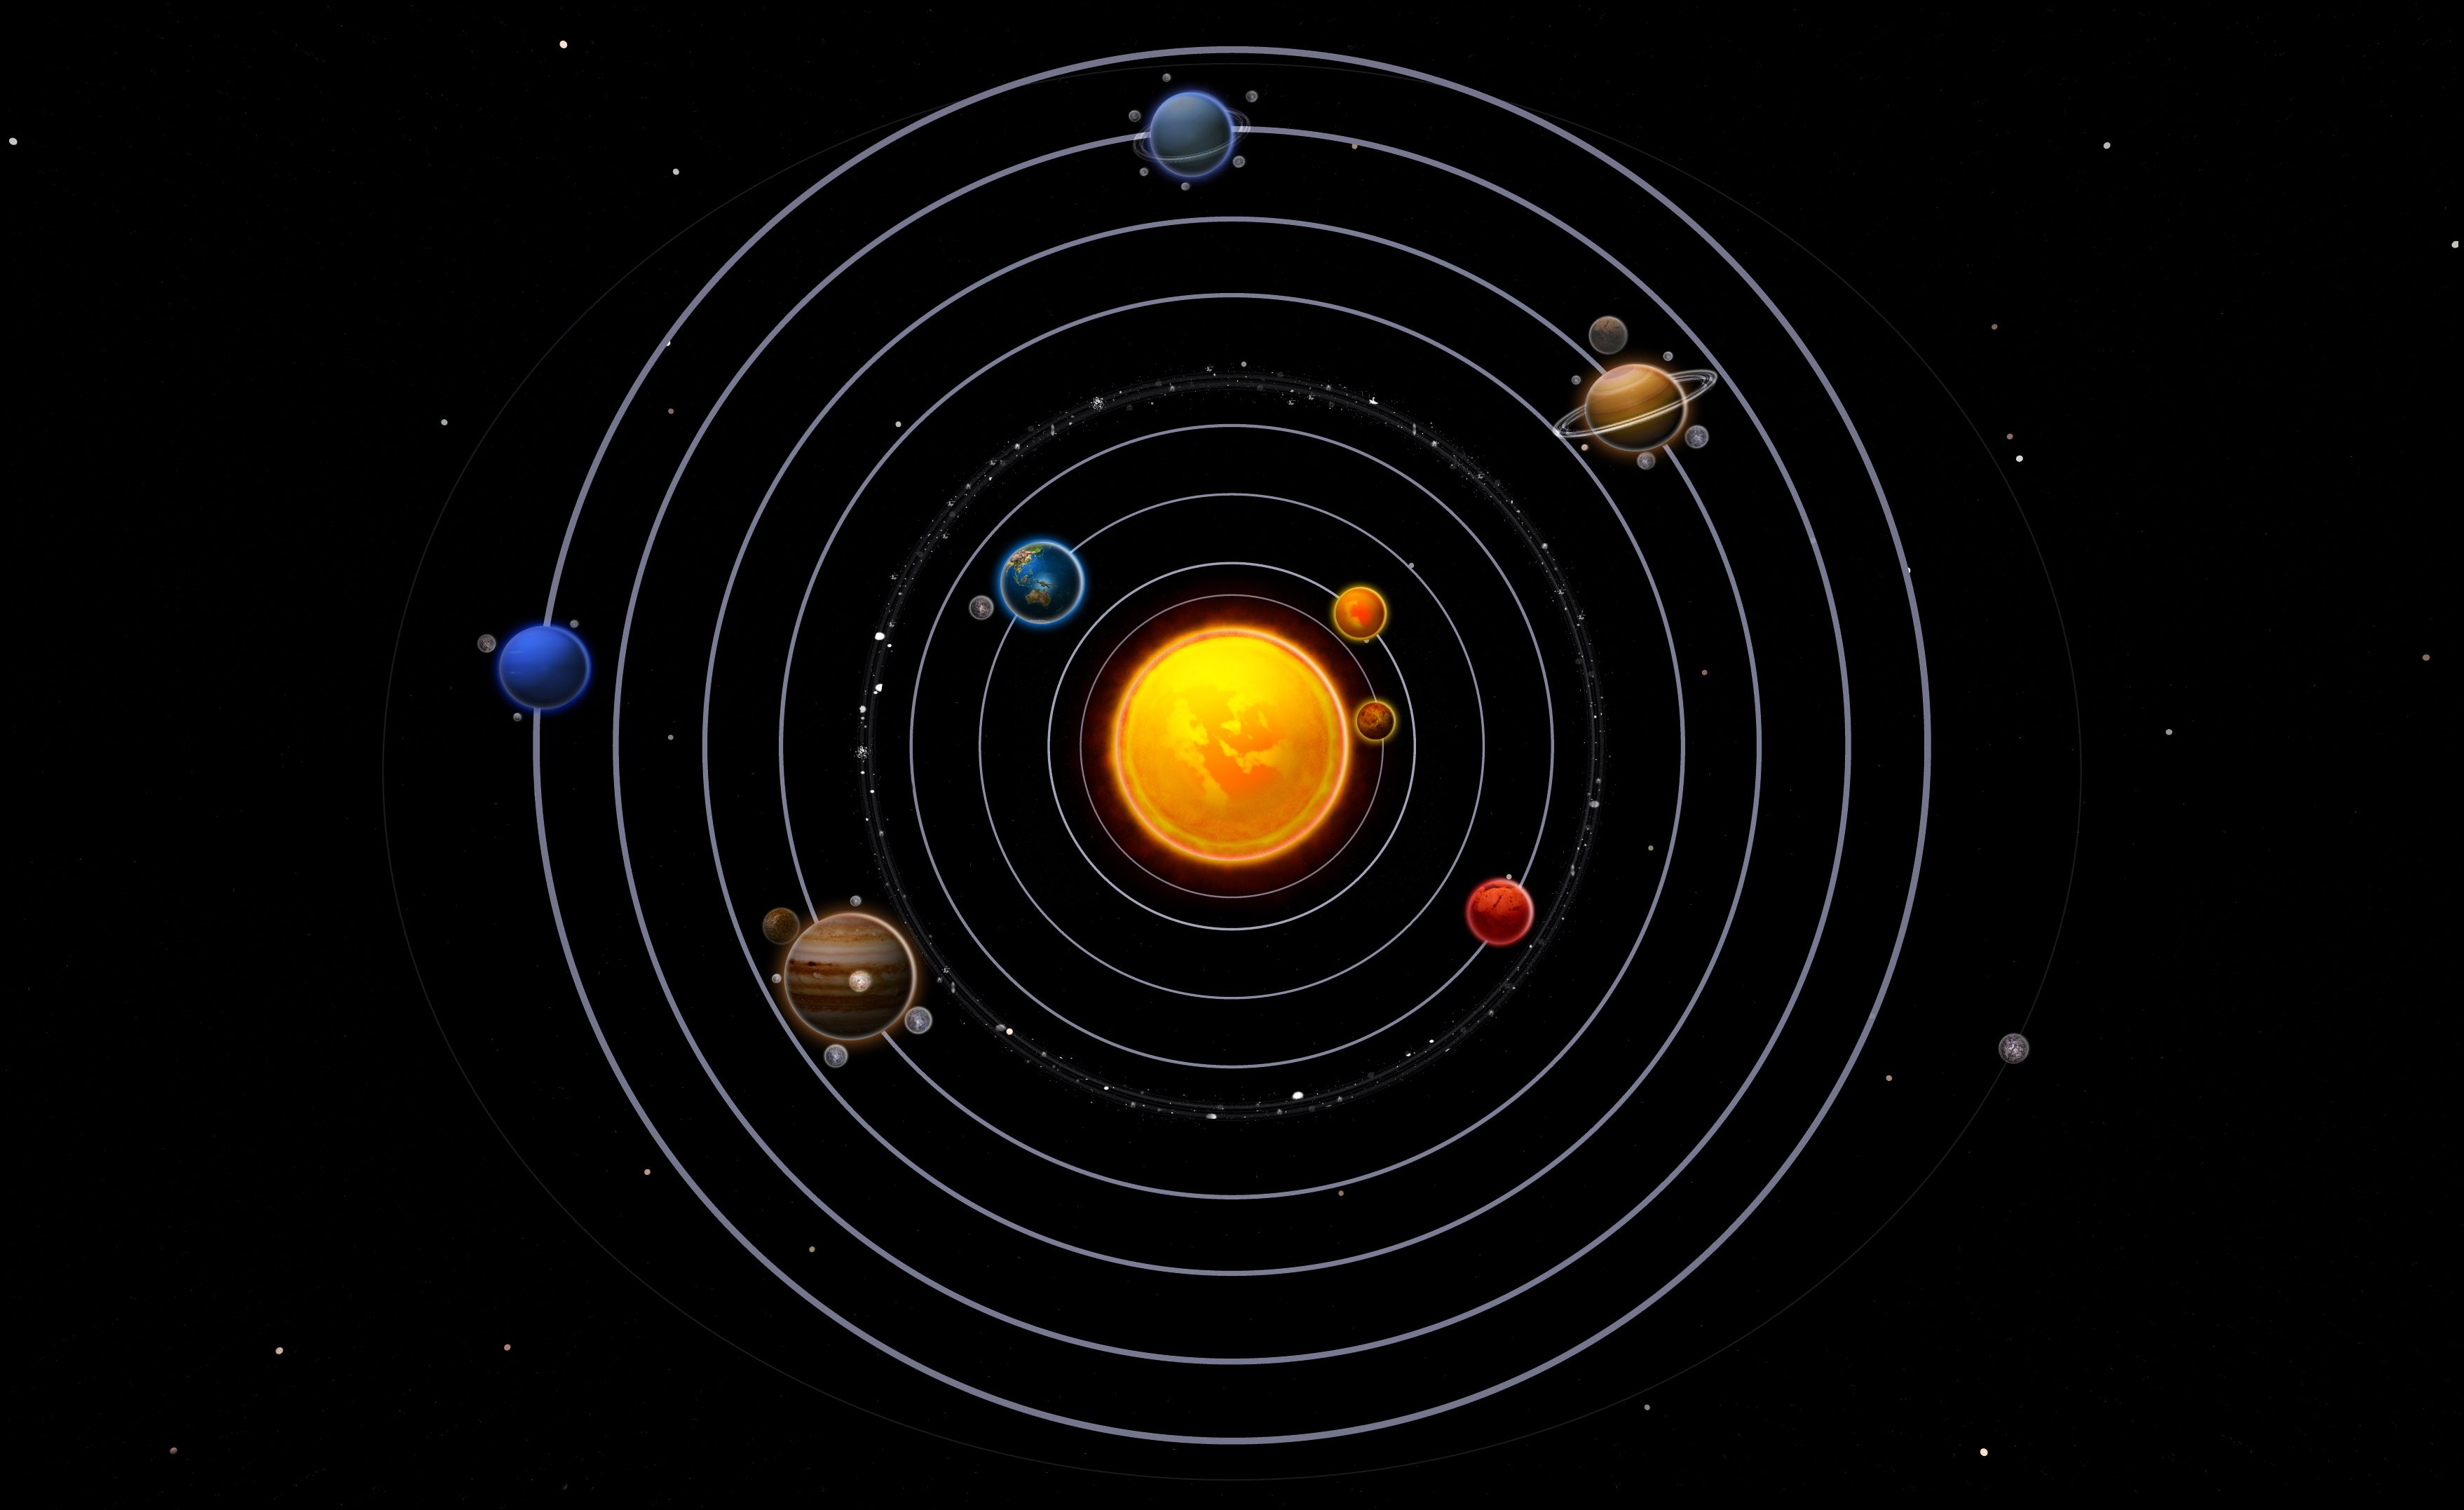 Asteroid clipart solar system space. Pictures in order pics